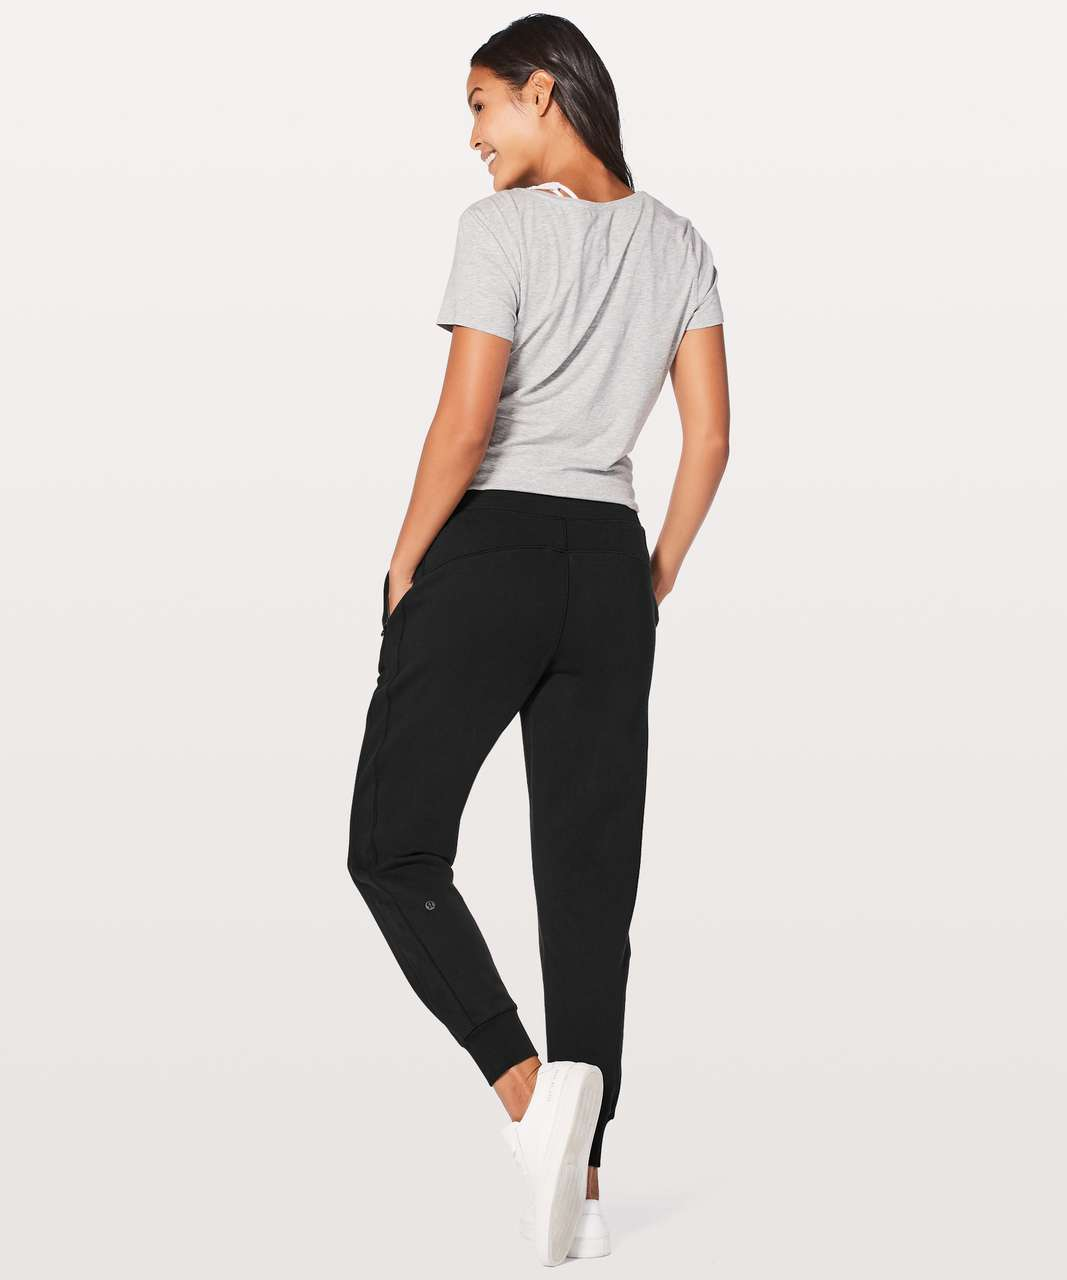 "Lululemon Cool & Collected Jogger *28"" - Black"